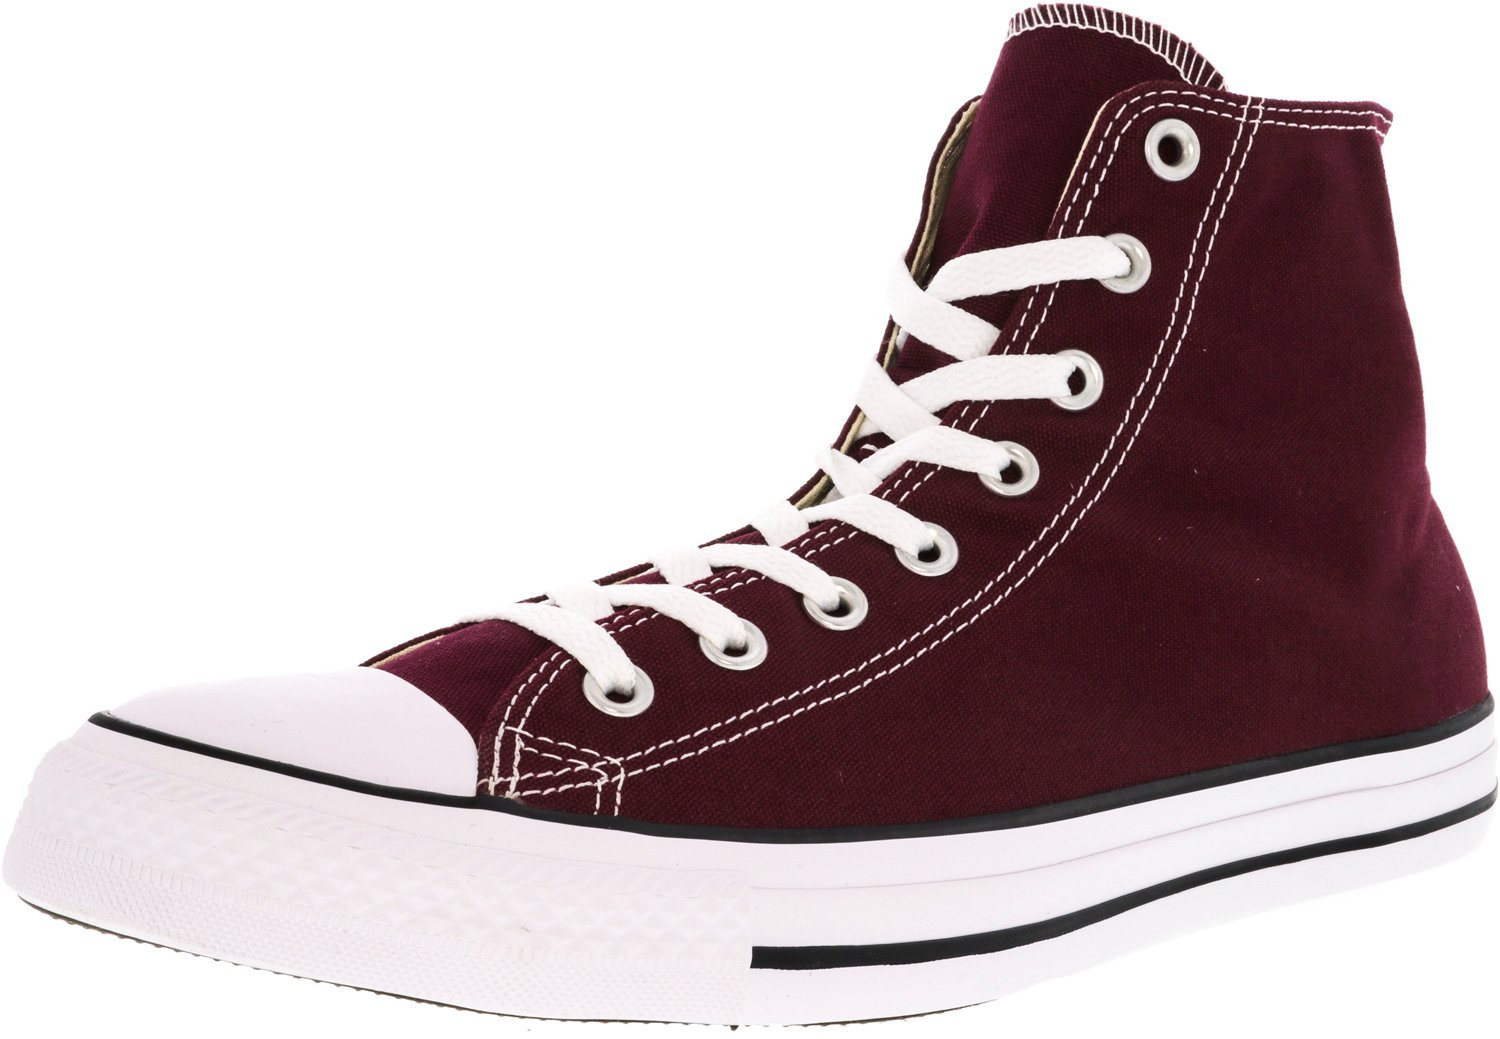 Converse Chuck Taylor All Star High Top B00FE9DG8A Size: M US6 / W US8 / EUR39;|Burgundy